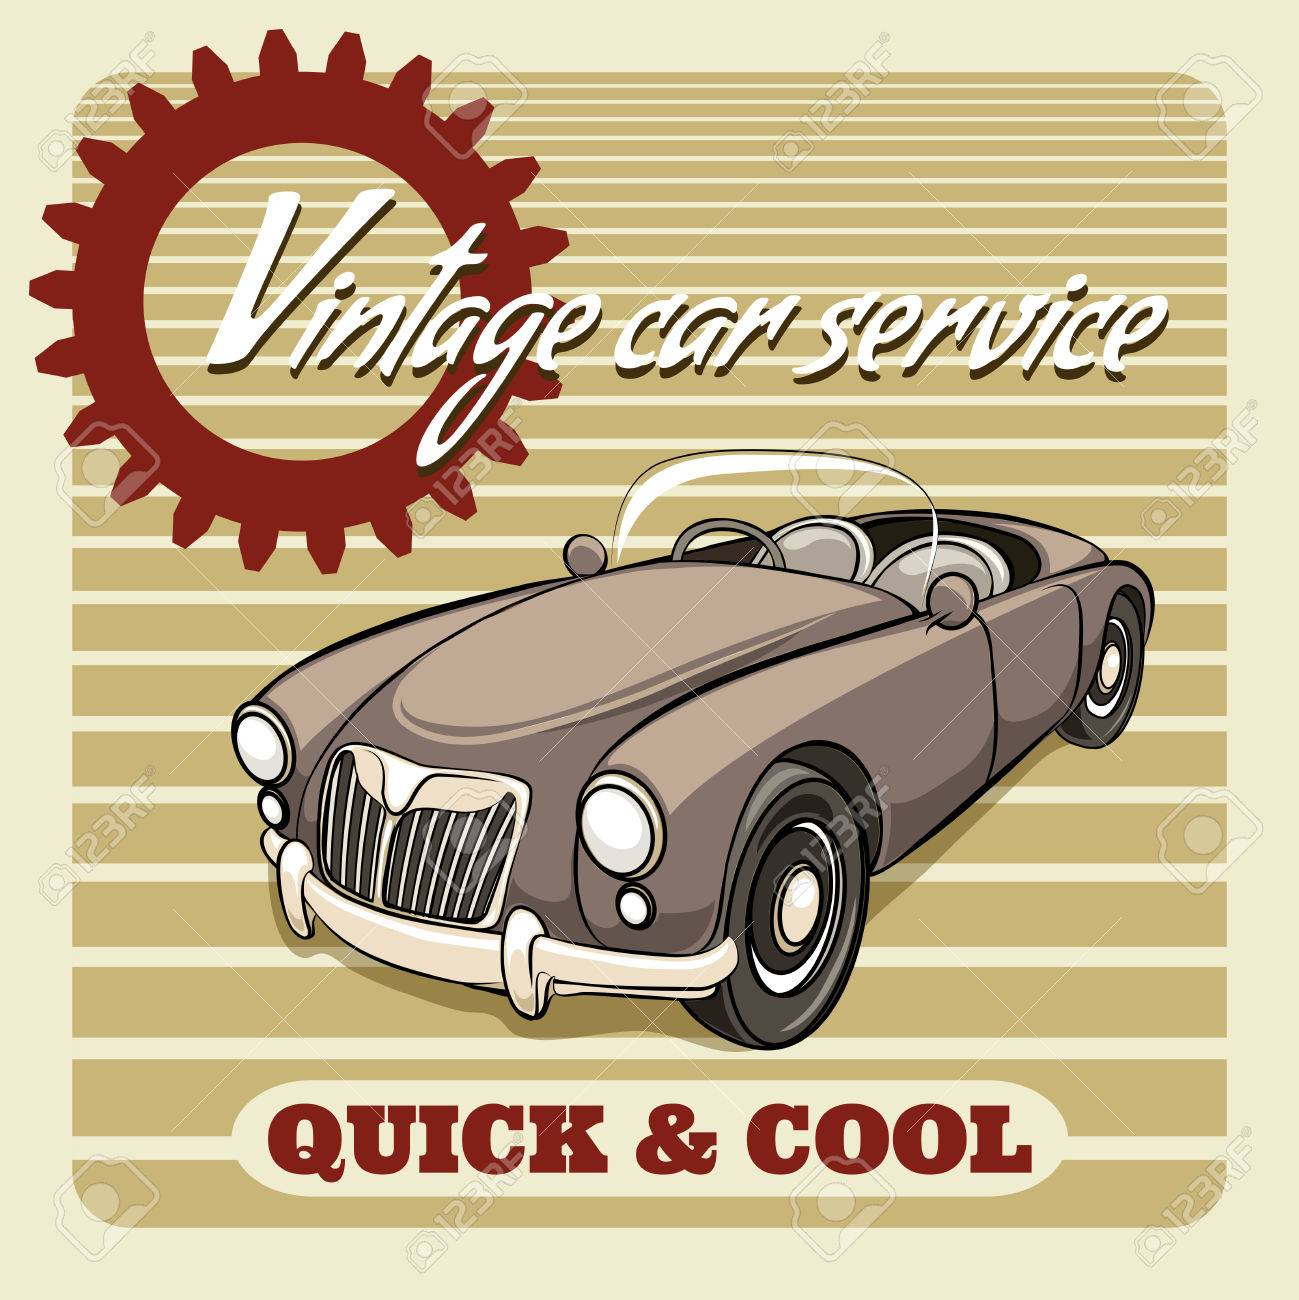 Quick And Cool - Vintage Car Service Poster Vector Design With ...